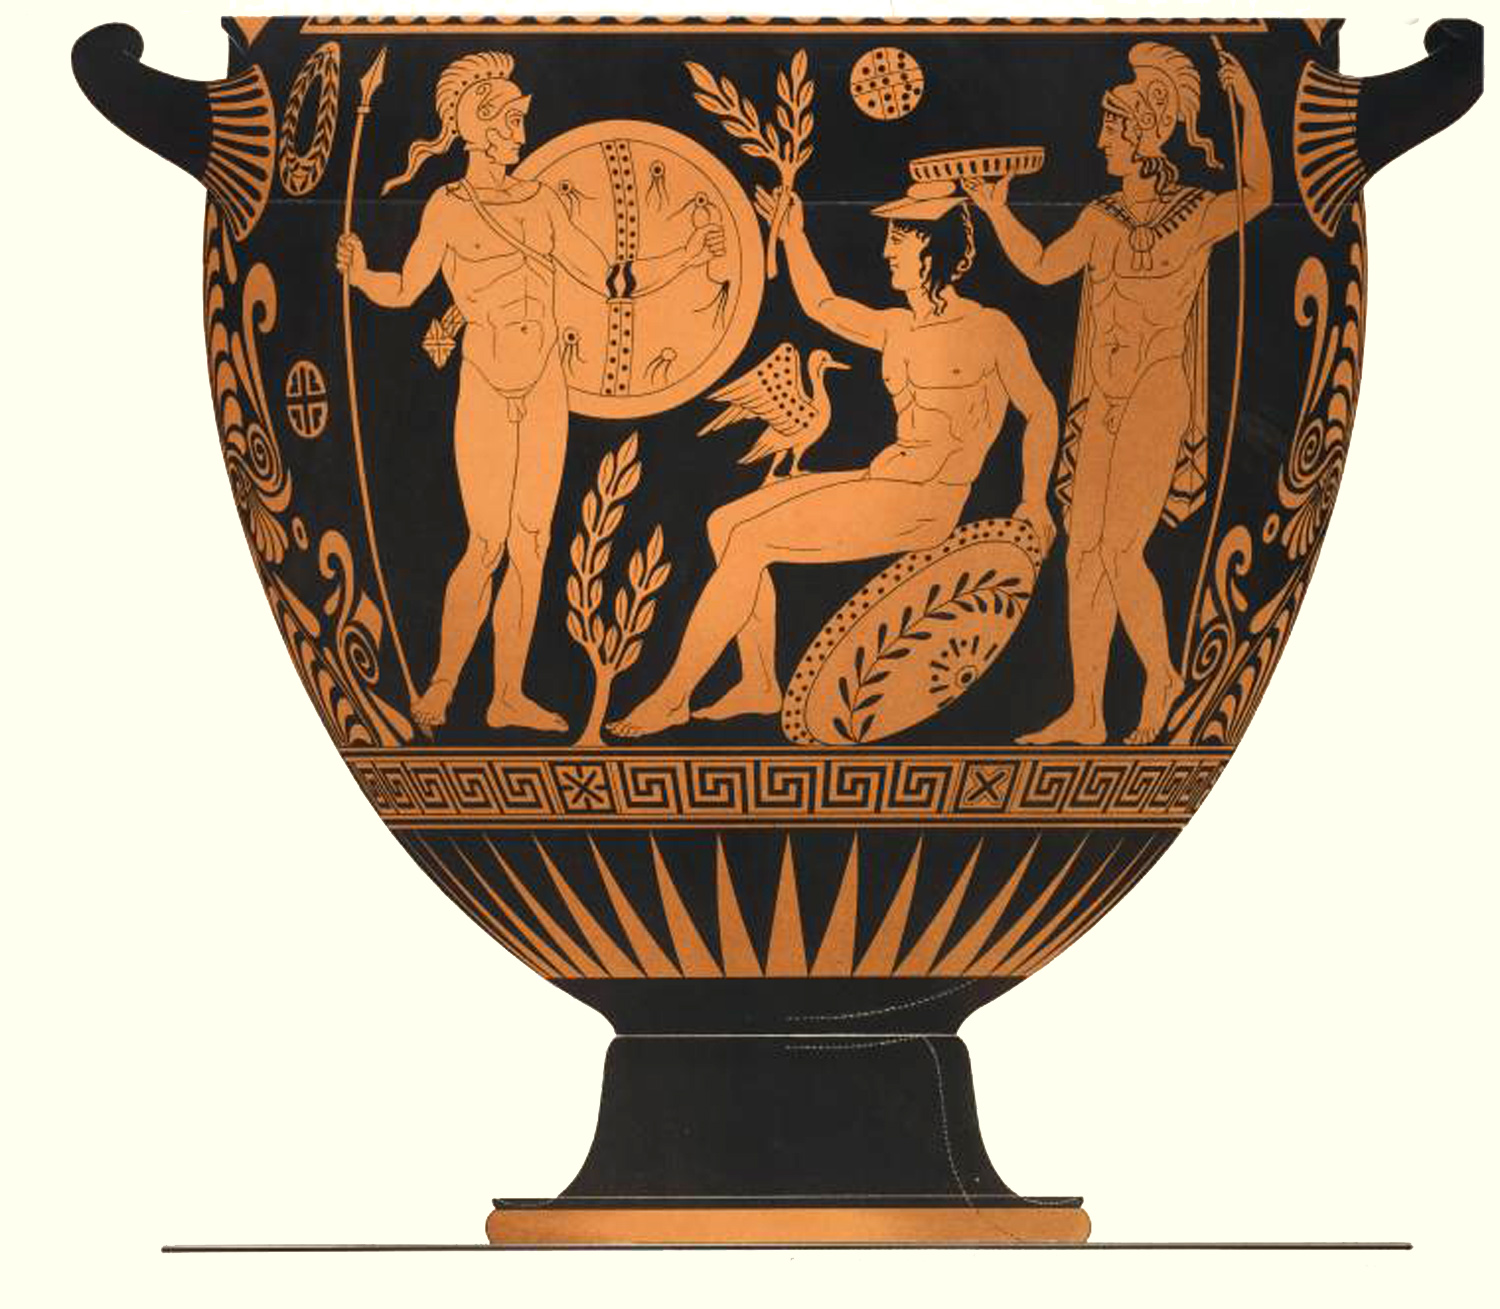 antique vessels, Greek, Greece, Antiquity, Macedonia, attic, Greek vase, Greek mythology, rhyton, amphora, Greek figure, Greek picture, Greek drawing, Greek pottery, Greek jug, Hellas, alabaster, lekythos, amphora, lutrofor, hydro, oynohoya, dinos, panathenaic amphora, ralpida, pelika, kantharos, piksida, kiaf, psikter, kilik, ryton, crater, skyphos, stamnos, pithos, kados, bikoz, orc, lagen, situla, cotonou, olpe, ariball, bombily, askos, akratofor, psikter, bavkalid, kotila, vial, kimba, kantharos, queyras, ksitra, tripodes, lebesa, Patera, Pelike, Loutrophoros, Stamnos, Column Kraters, Volute Kraters, Calyx Krater, Bell Krater, Psykter, Hydria, Oinochoe, Lekythos, Alabastron, Aryballos,